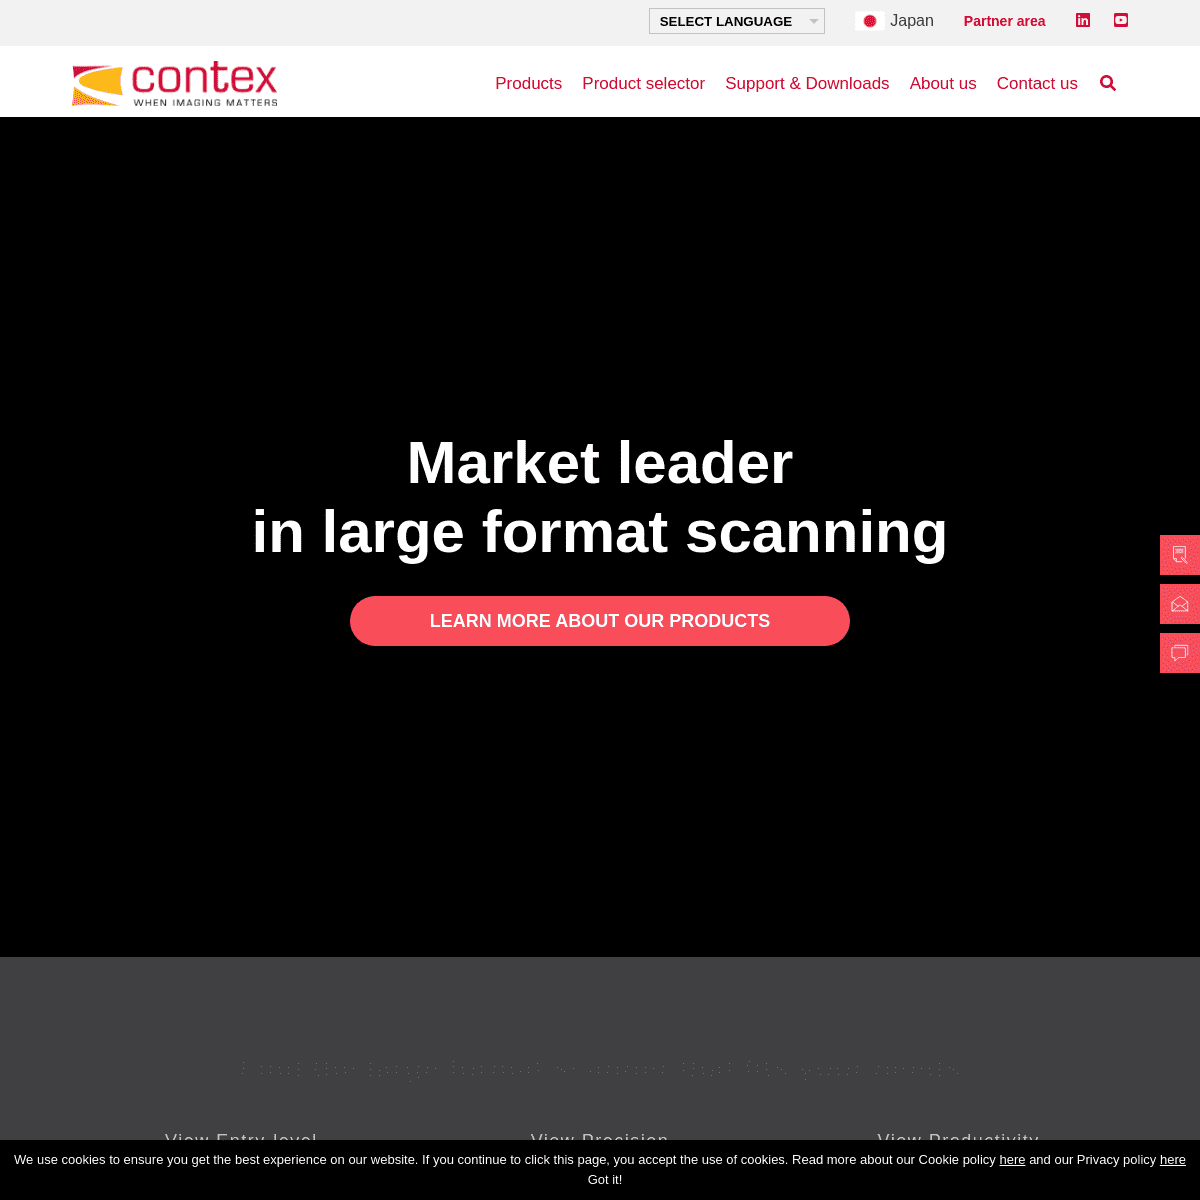 Contex - Market leader in high quality large format scanning